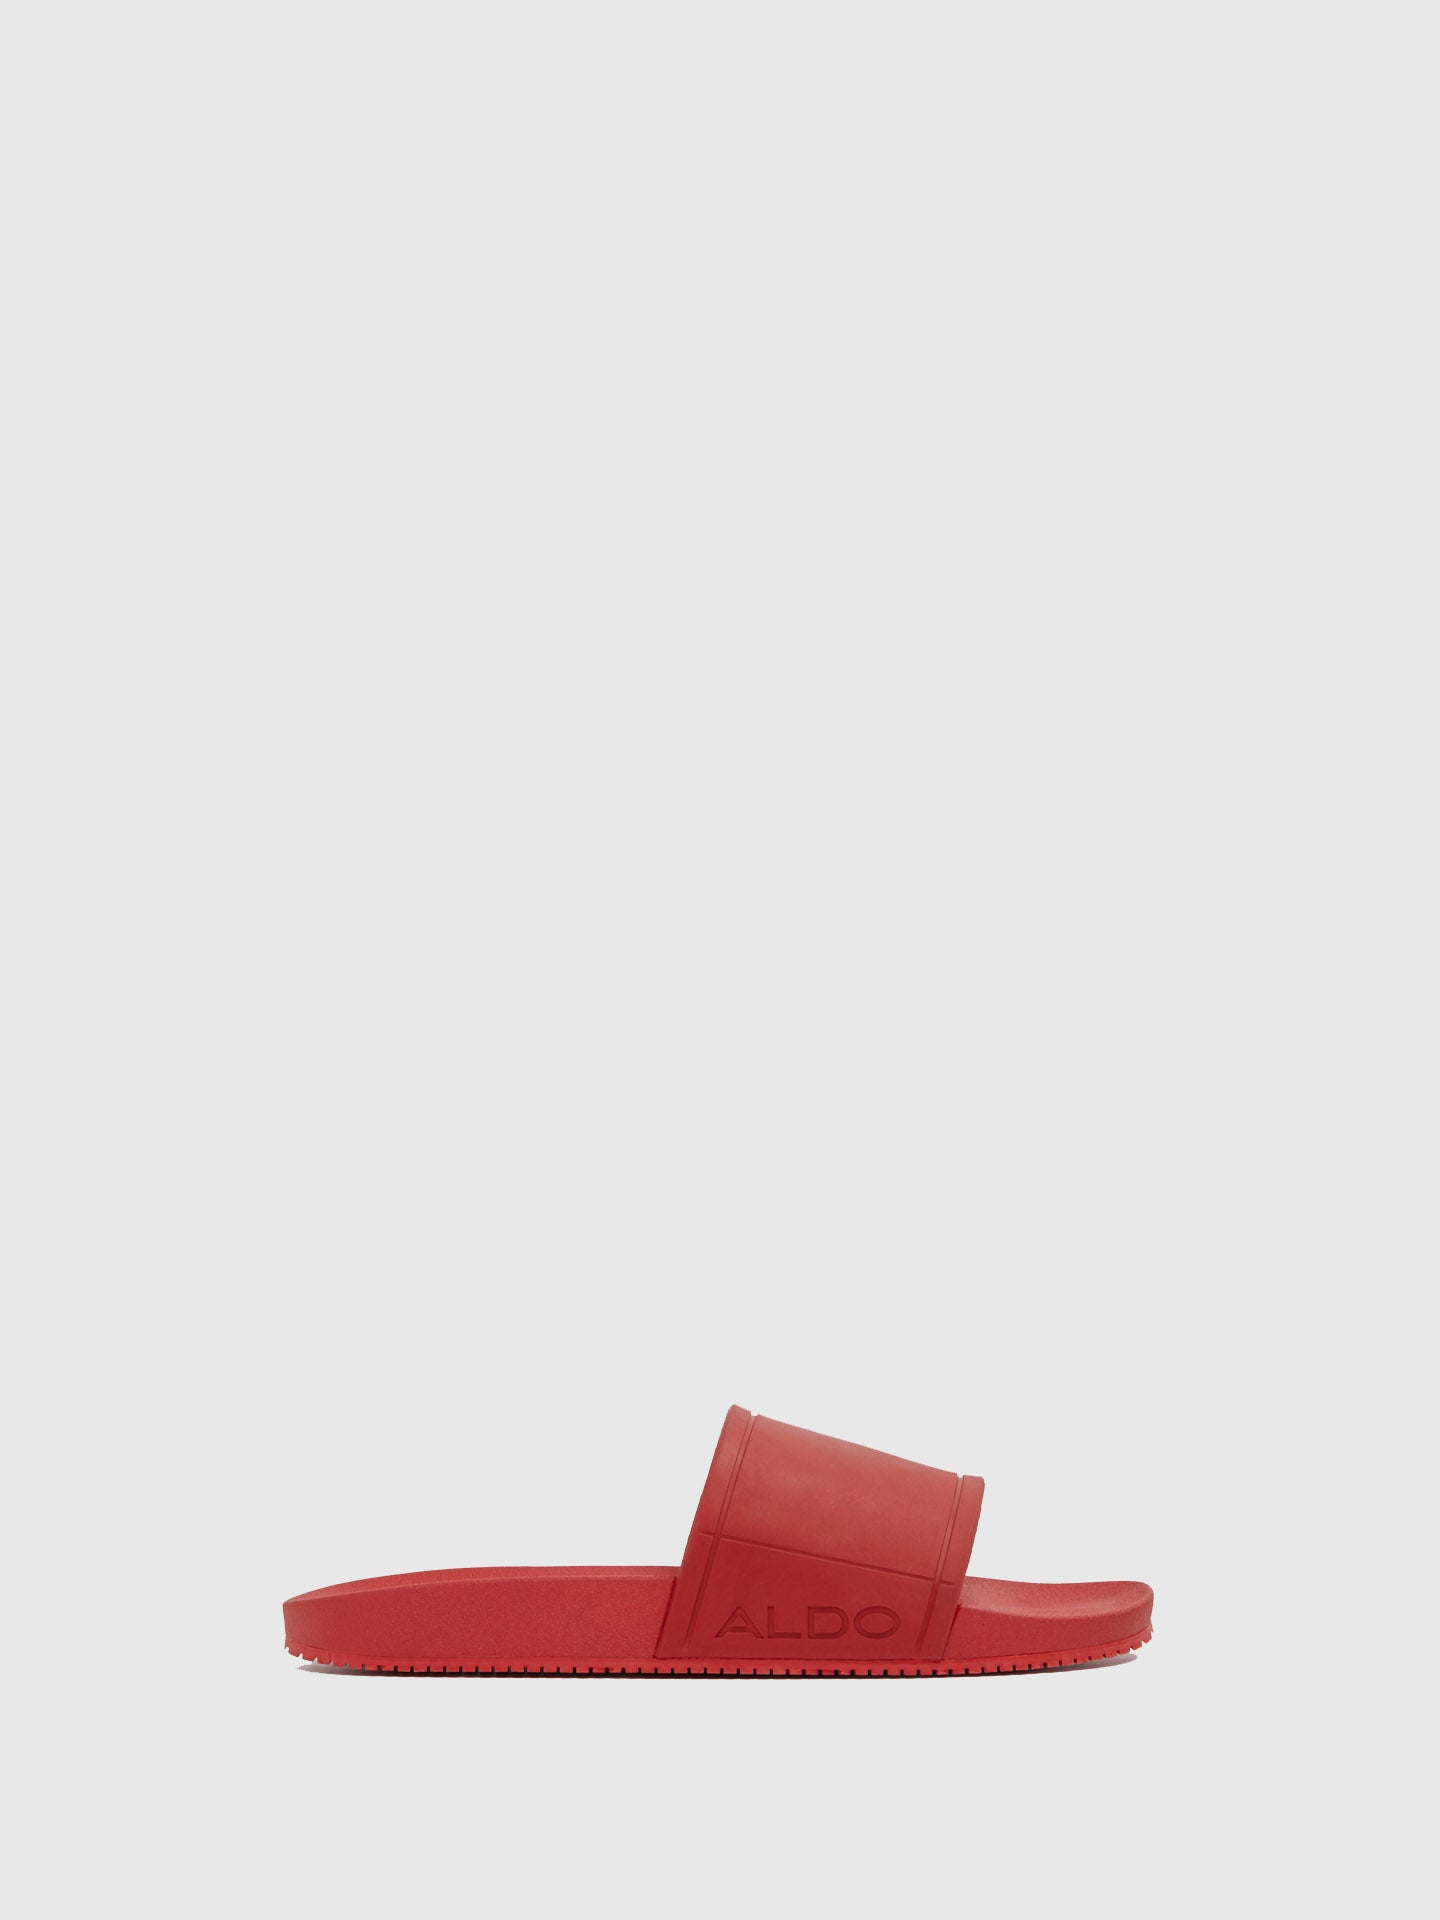 Aldo Red Open Toe Sandals